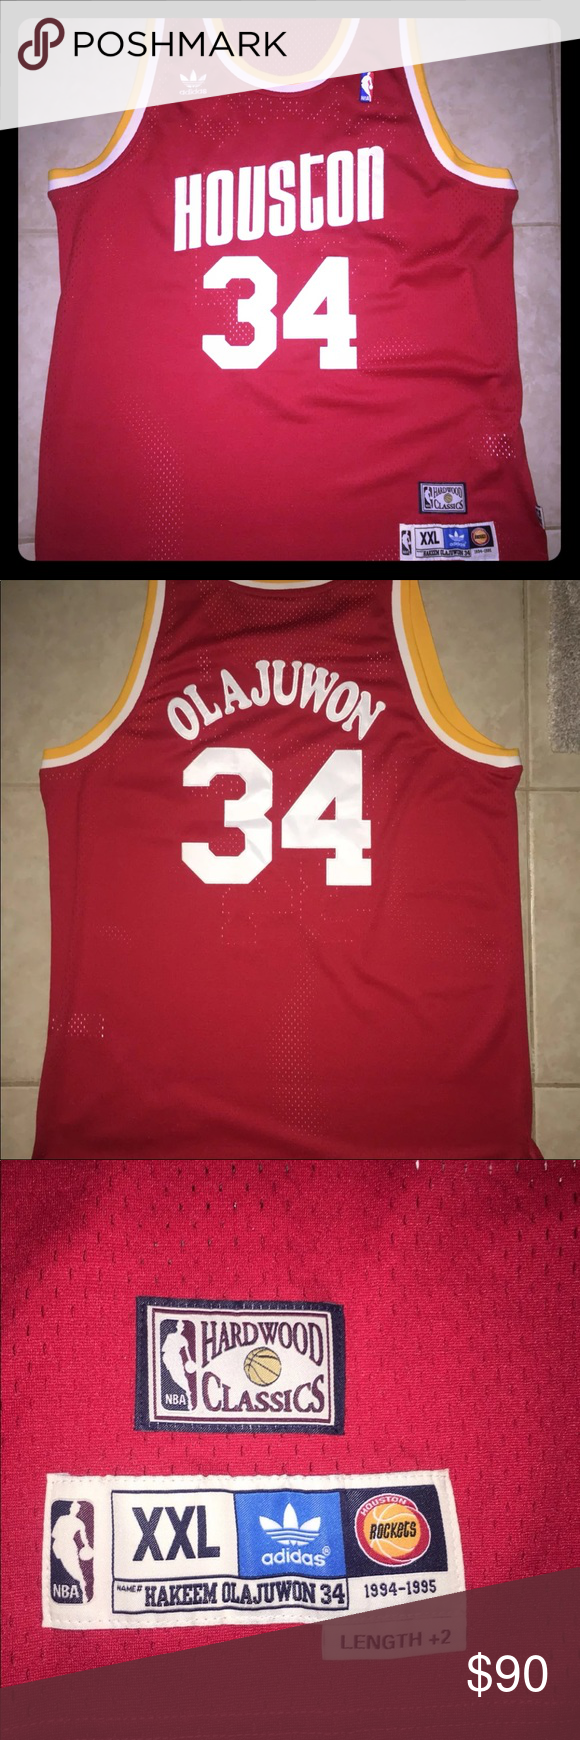 Houston Rockets Hakeem Olajuwon Classic Jersey Hardwood Classics Official Houston  Rockets Hakeem Olajuwon NBA Adidas Jersey SIZE  XXL (Medium Also ... 46a933f7c